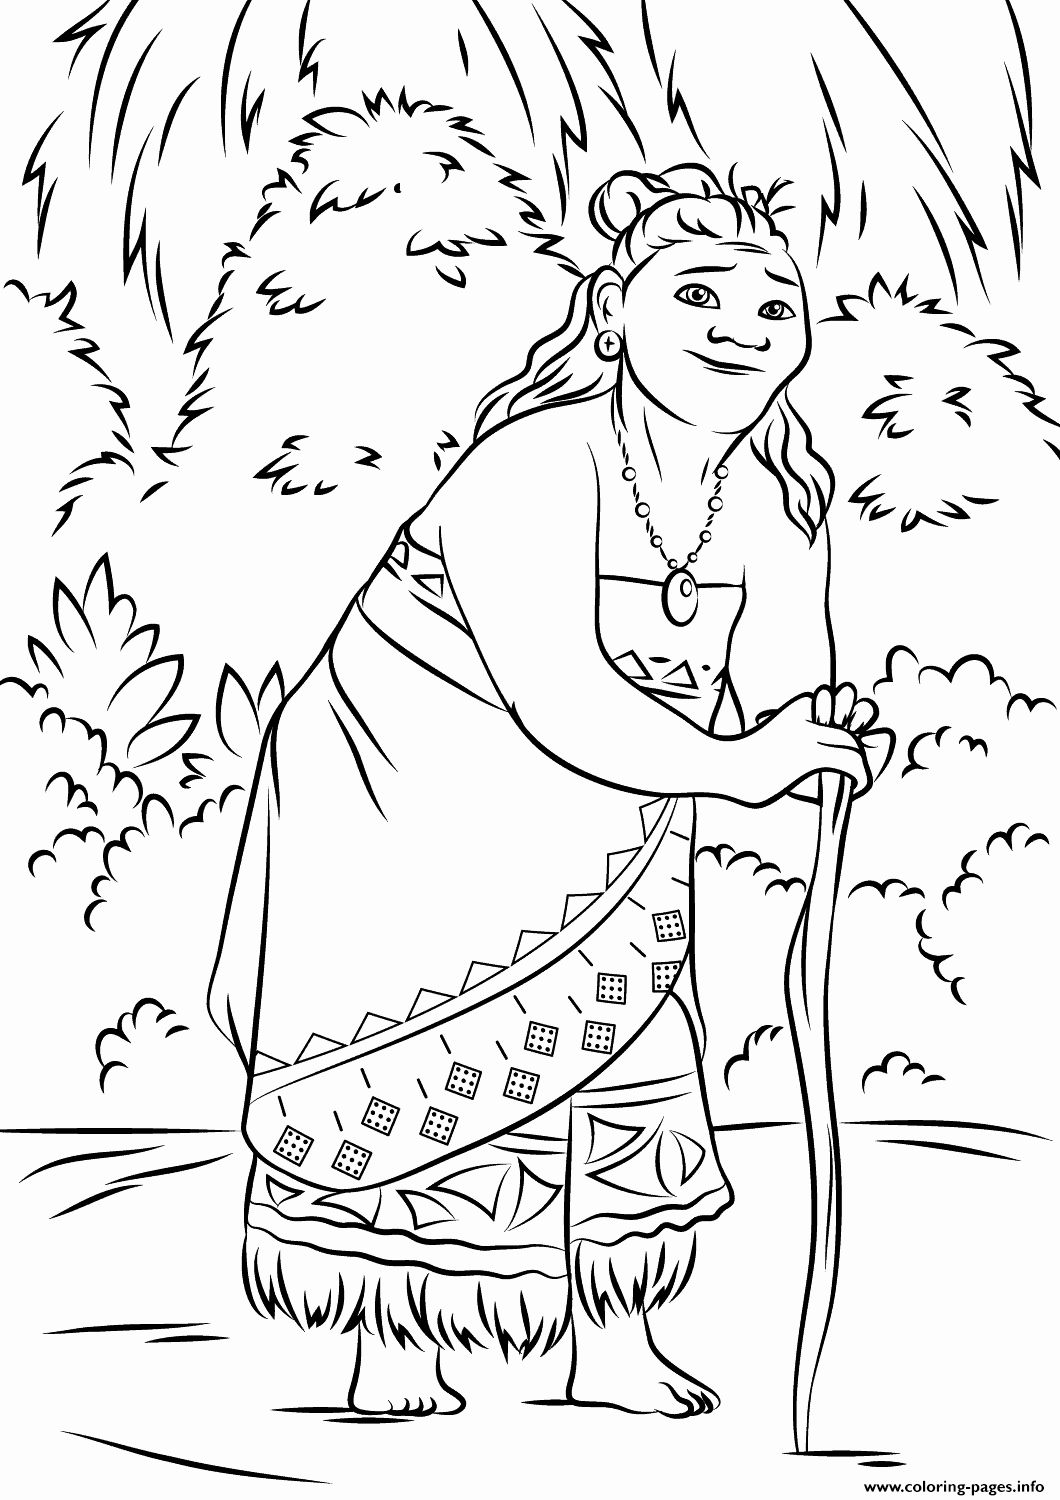 Moana Coloring Pages Disney In 2020 Moana Coloring Moana Coloring Pages Disney Coloring Pages [ 1500 x 1060 Pixel ]